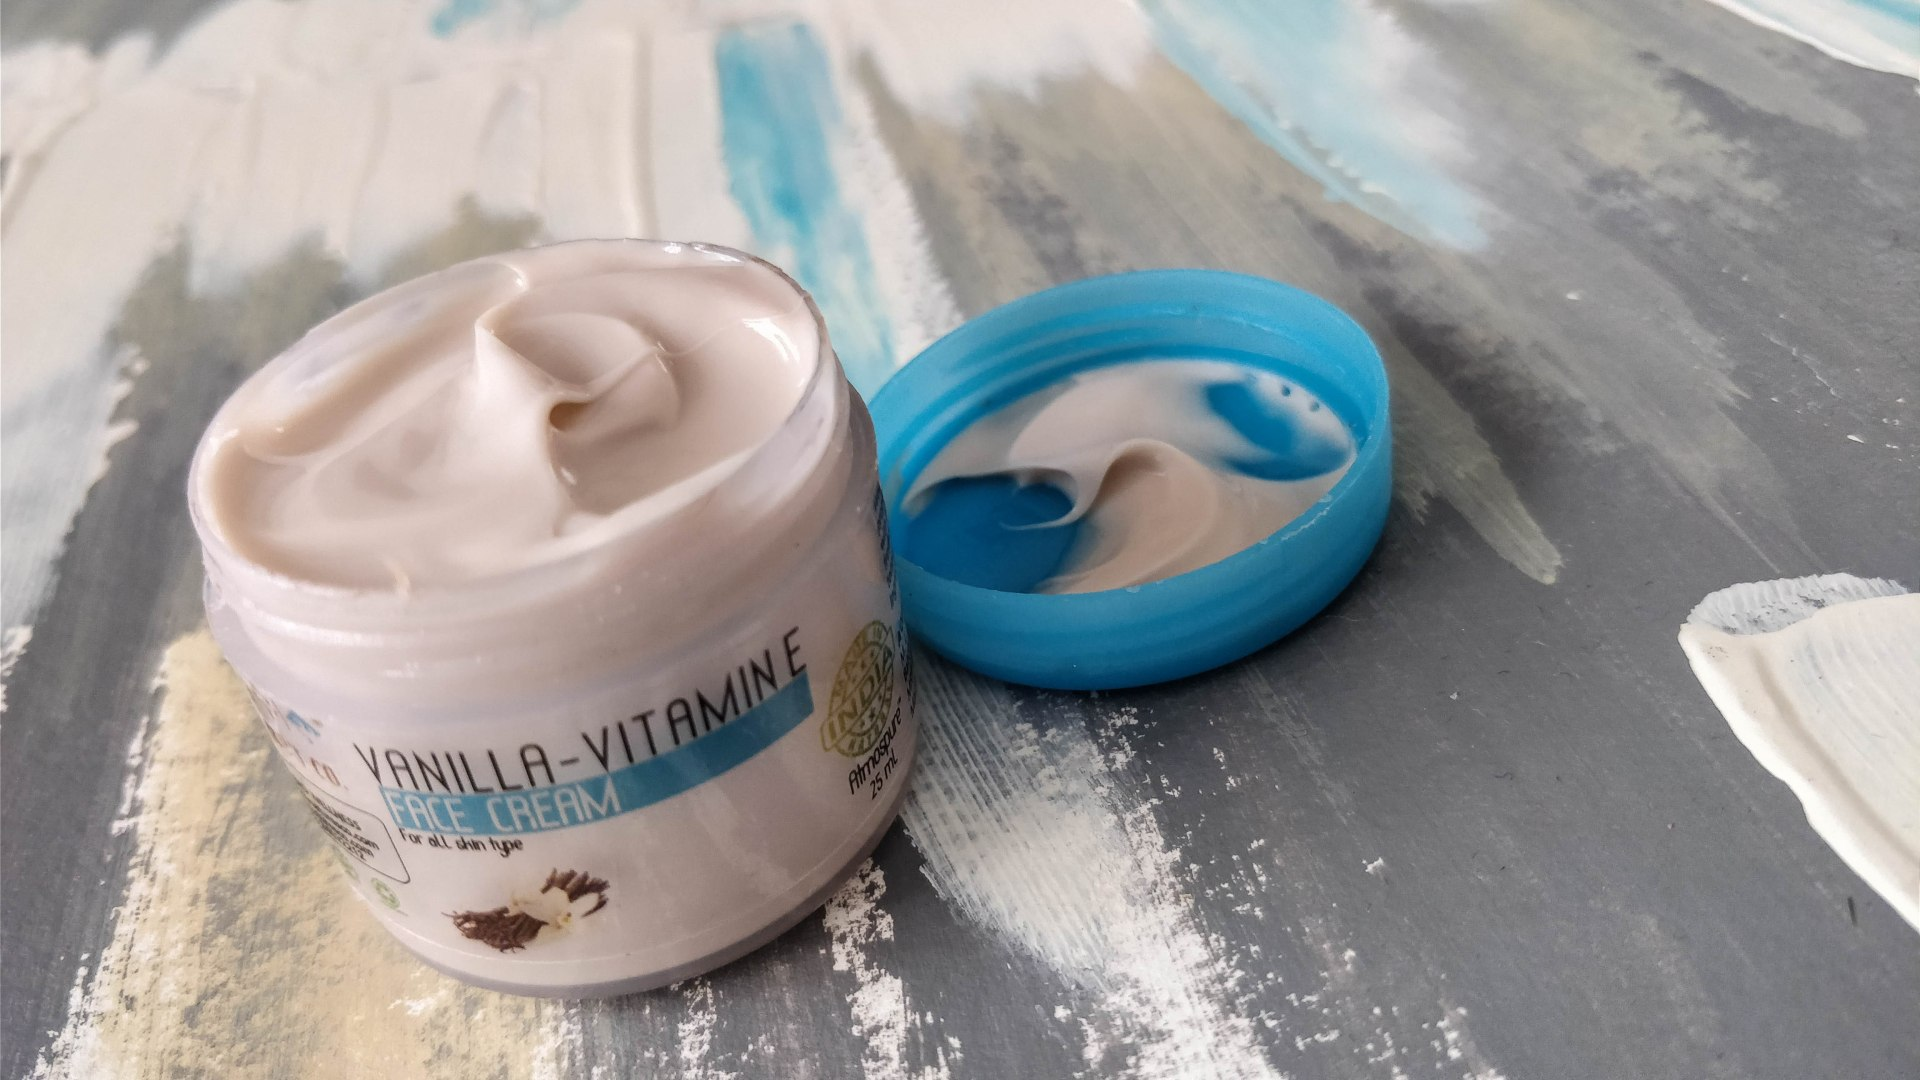 The Natures Co. Vanilla Vitamin E Face Cream